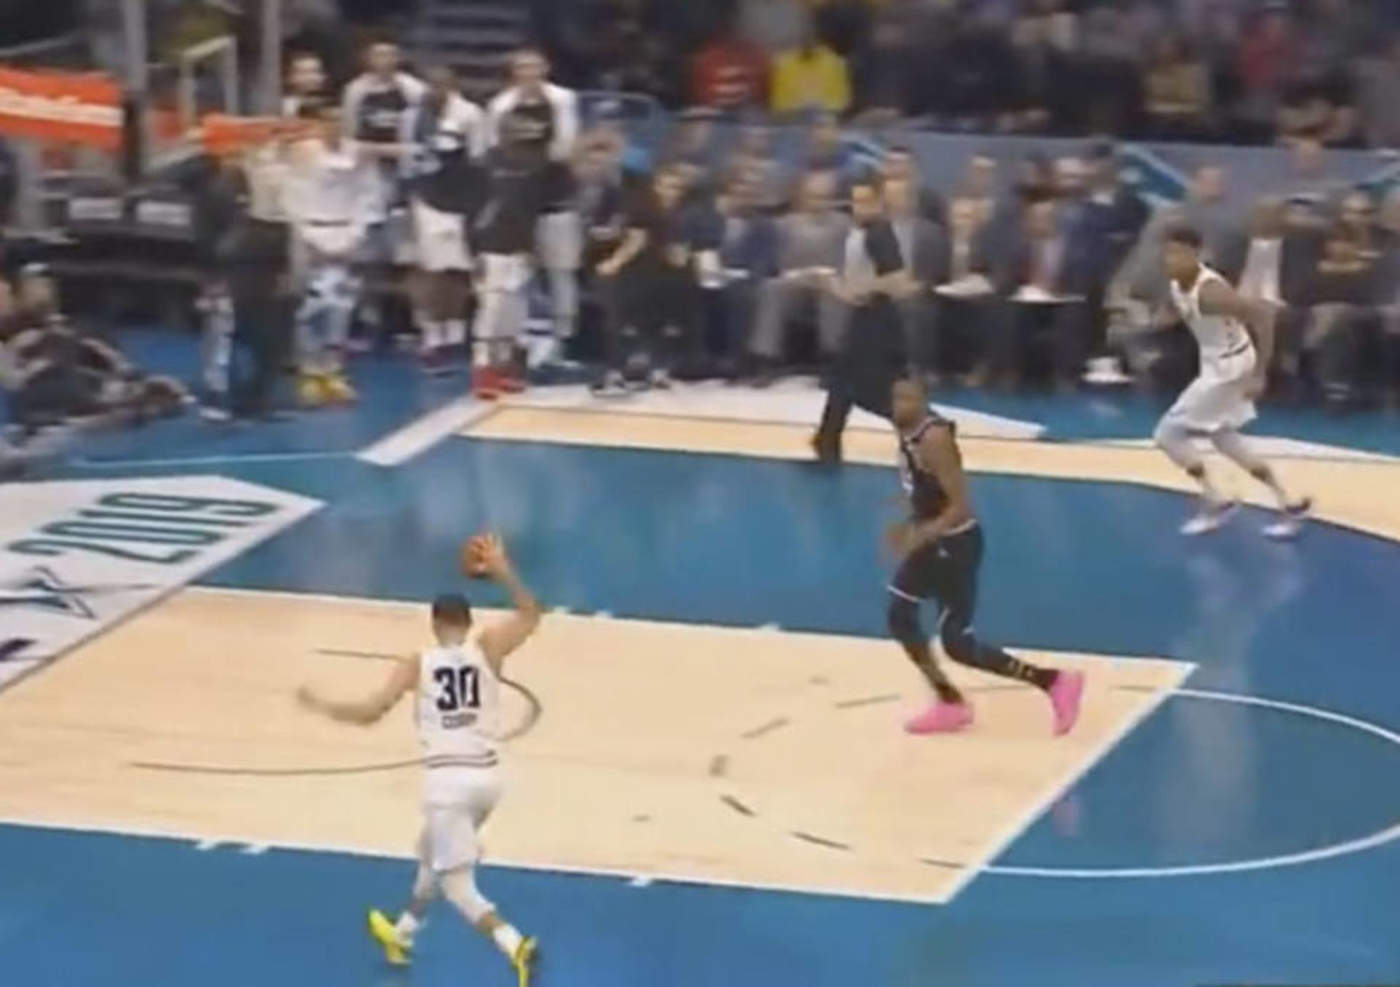 VIDEO: Stephen Curry protagoniza la posible mejor jugada del año